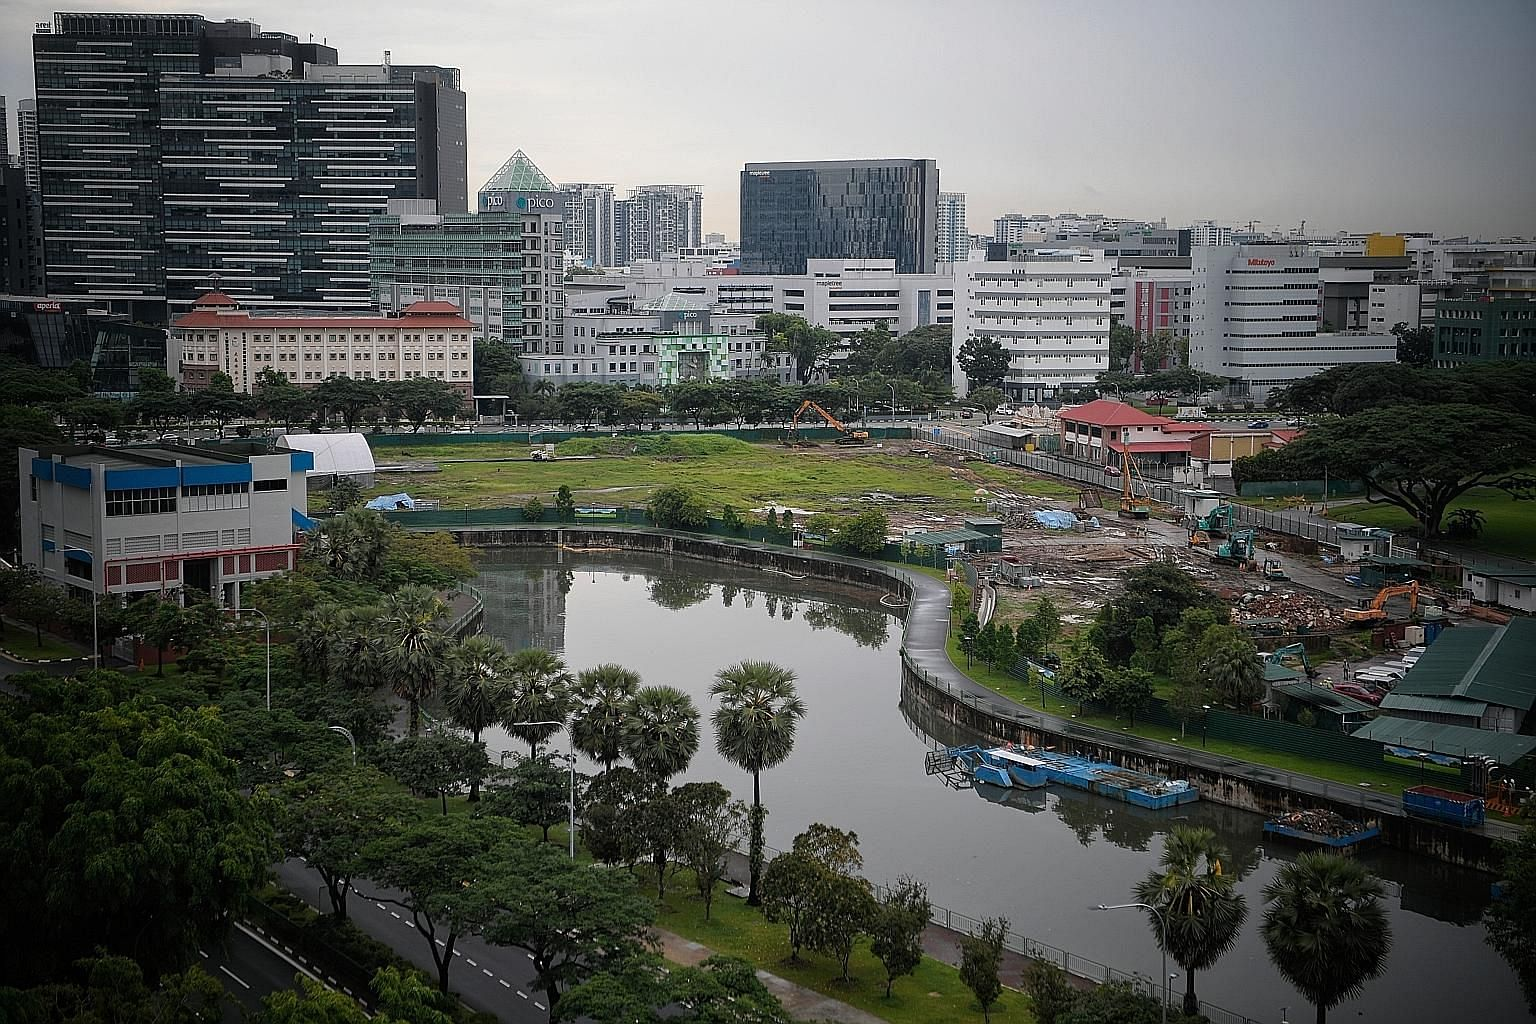 The Kampong Bugis site (right) will be released for sale under the reserve list to a master developer. It is expected to yield 4,000 private homes and 50,000 sq m of space for retail, offices, community uses, serviced apartments, sports and recreatio